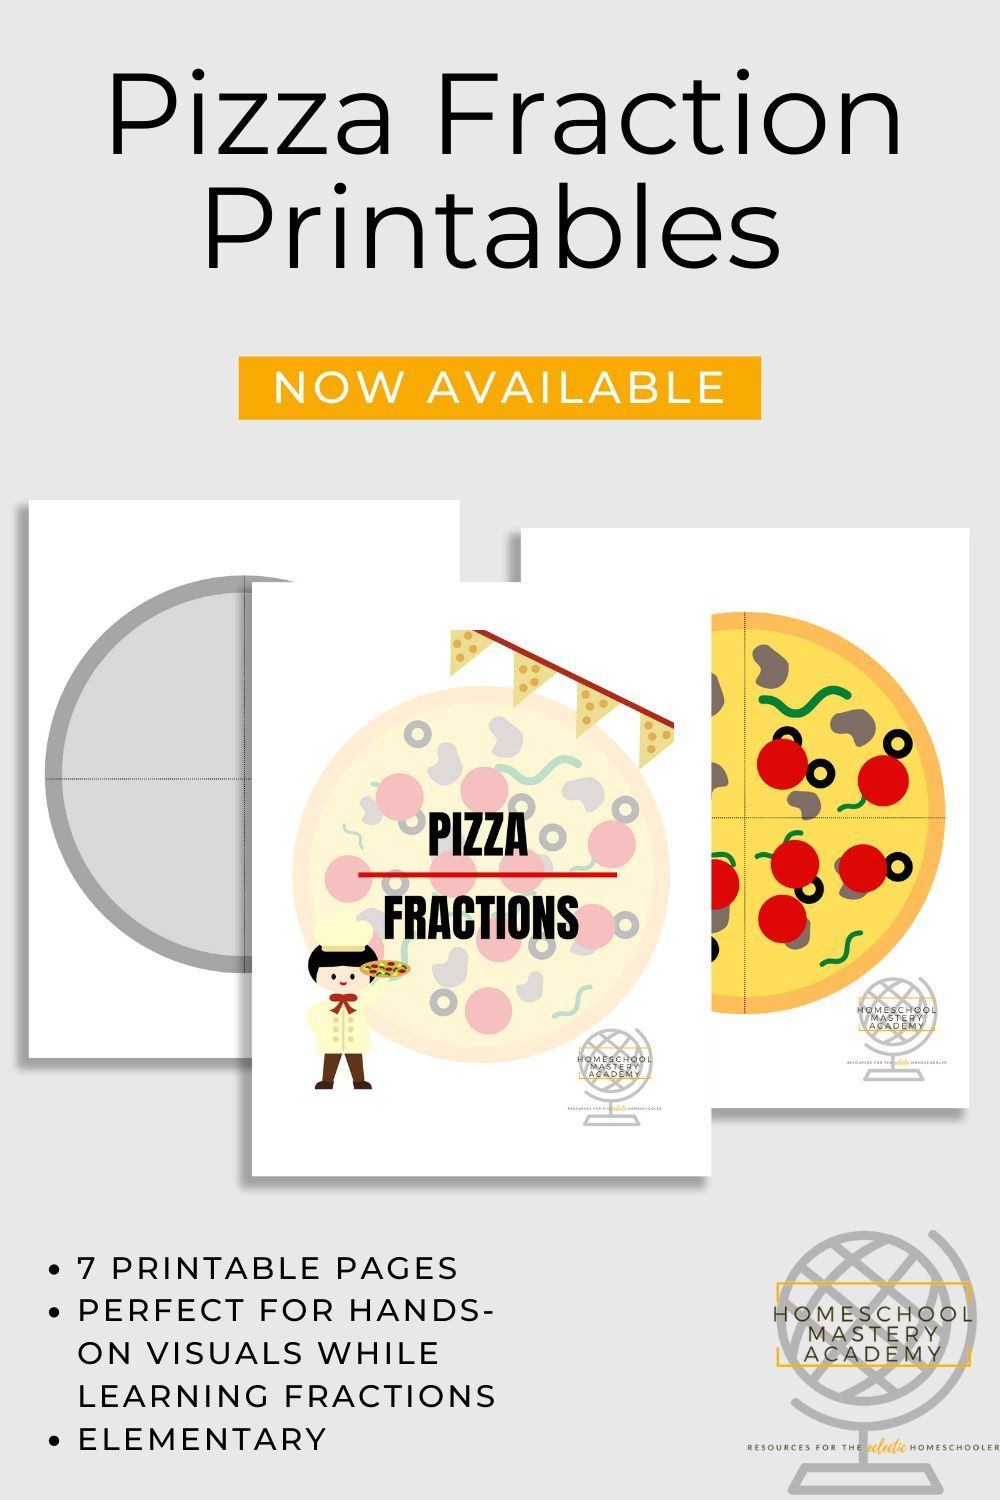 Pizza Fraction Printables For Elementary Hands On In 2020 Learning Fractions Fraction Printables Homeschool Math [ 1500 x 1000 Pixel ]